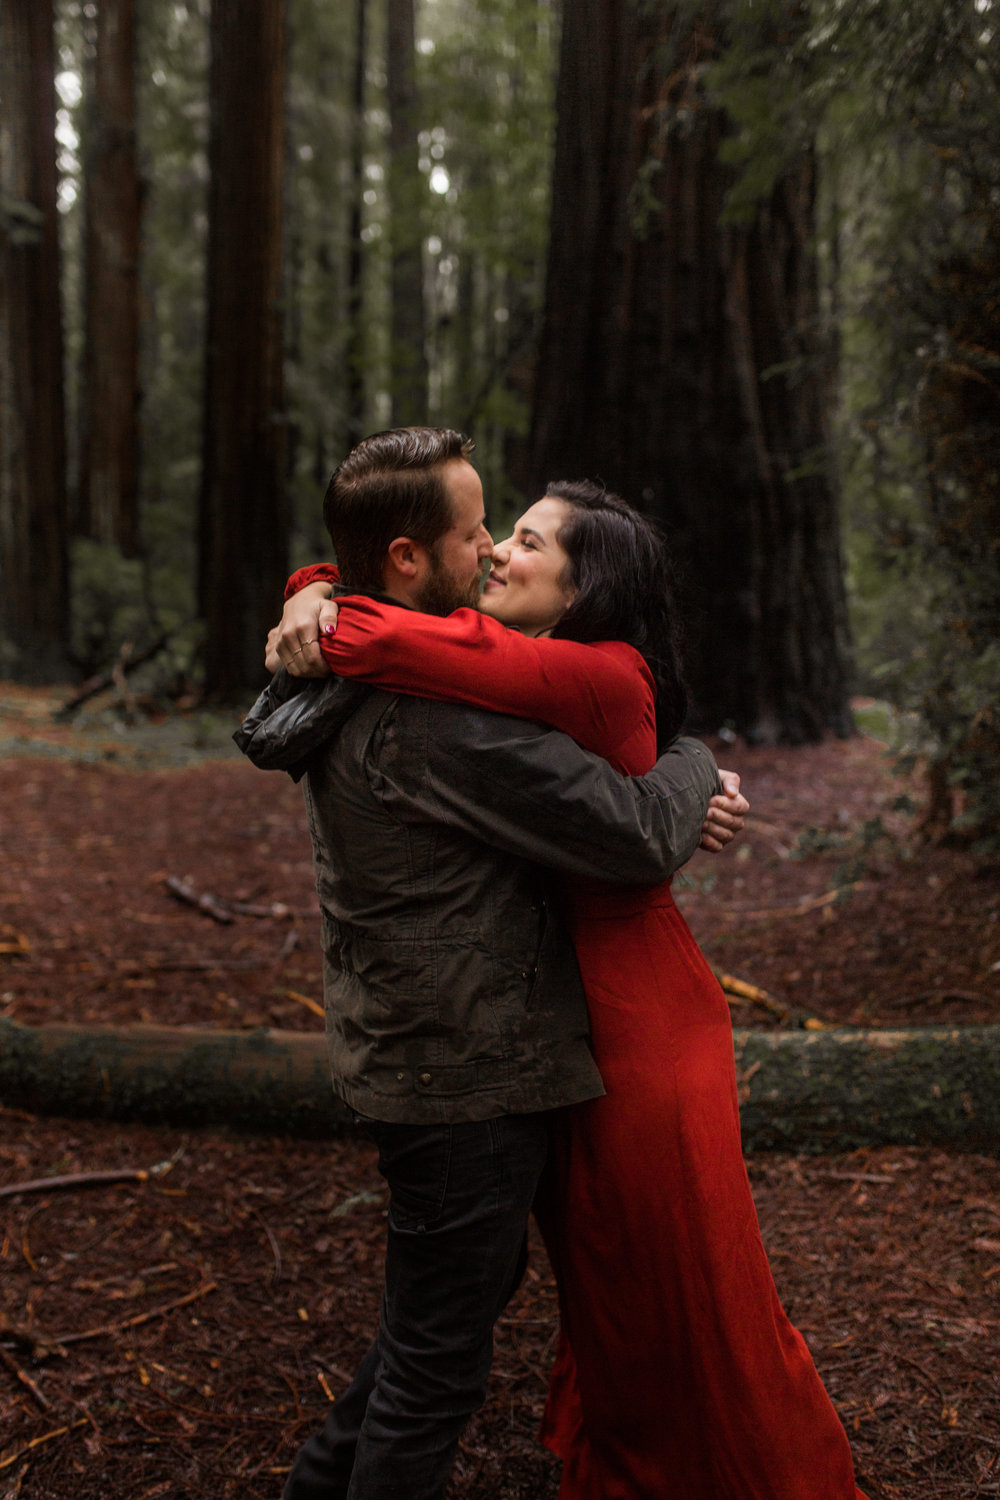 nicole-daacke-photography-redwoods-national-park-forest-rainy-foggy-adventure-engagement-session-humboldt-county-old-growth-redwood-tree-elopement-intimate-wedding-photographer-35.jpg